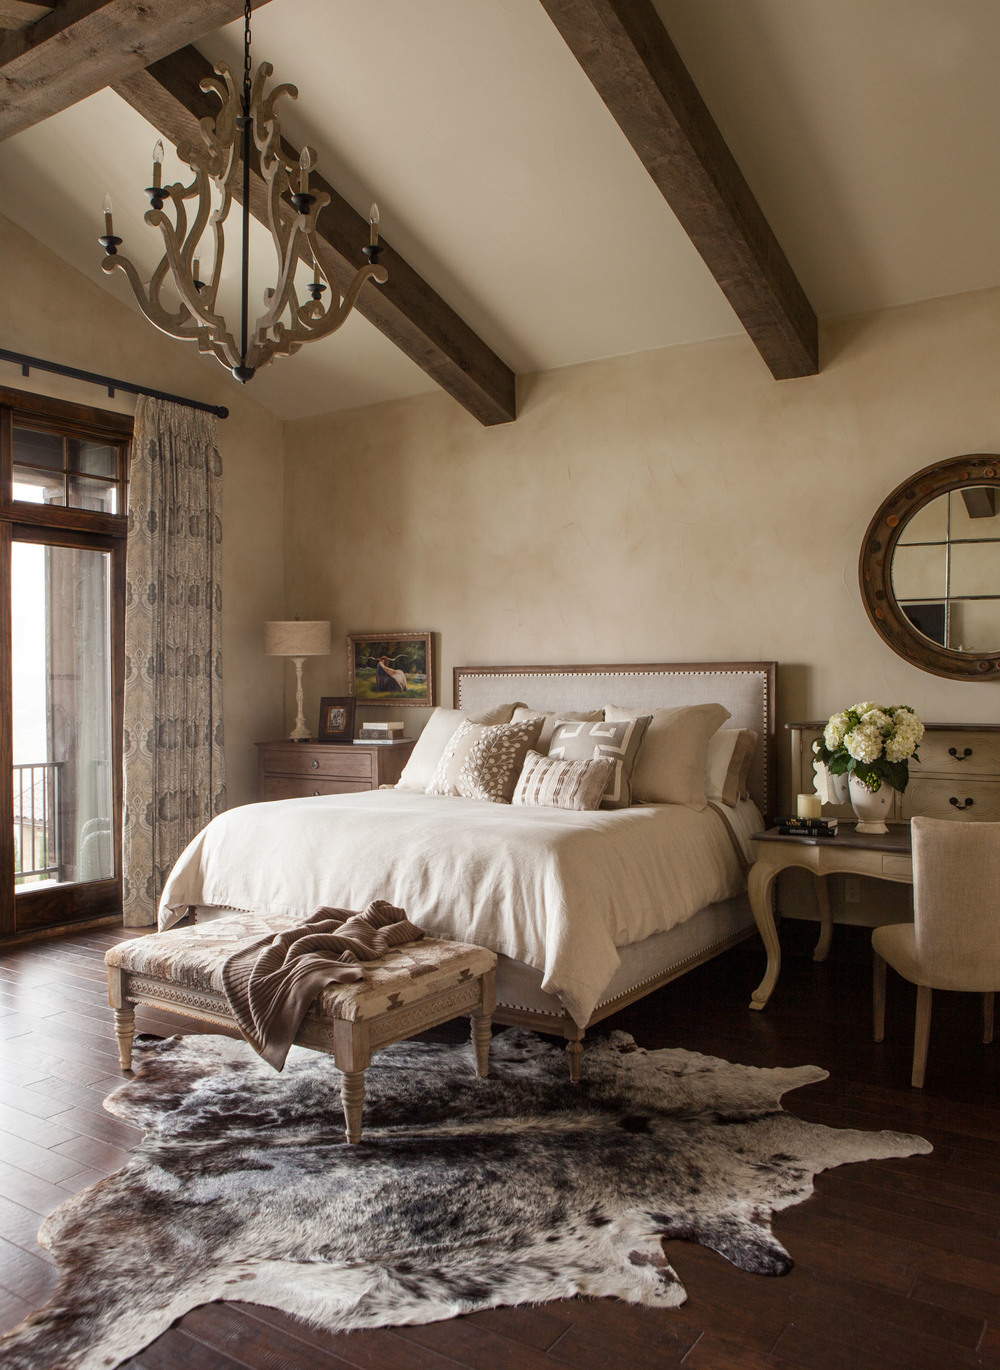 austin-house-bedroom-bed-interior-design.jpg